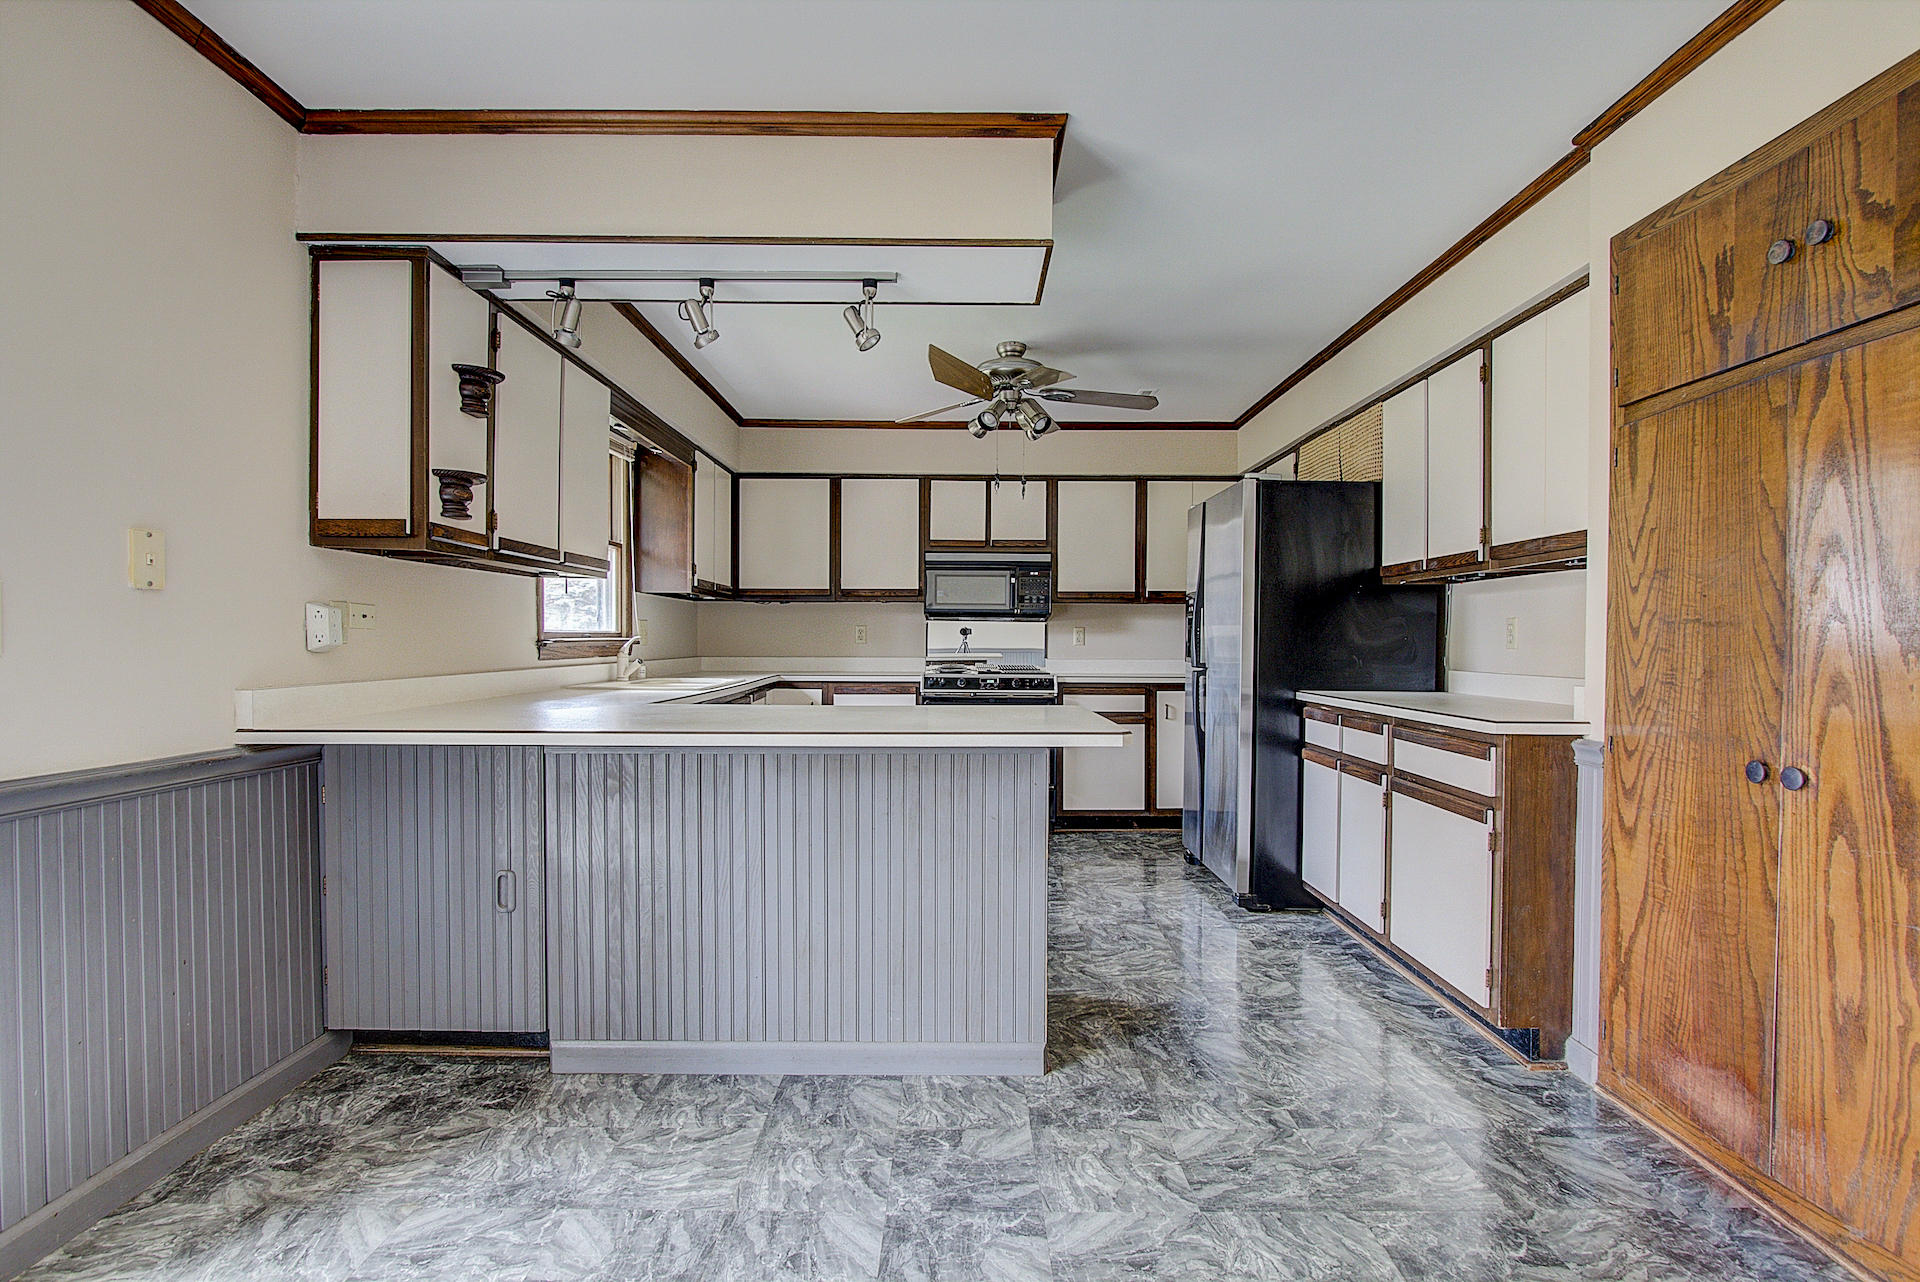 518 Oxford Dr, Hartland, Wisconsin 53029, 3 Bedrooms Bedrooms, ,1 BathroomBathrooms,Single-Family,For Sale,Oxford Dr,1612988